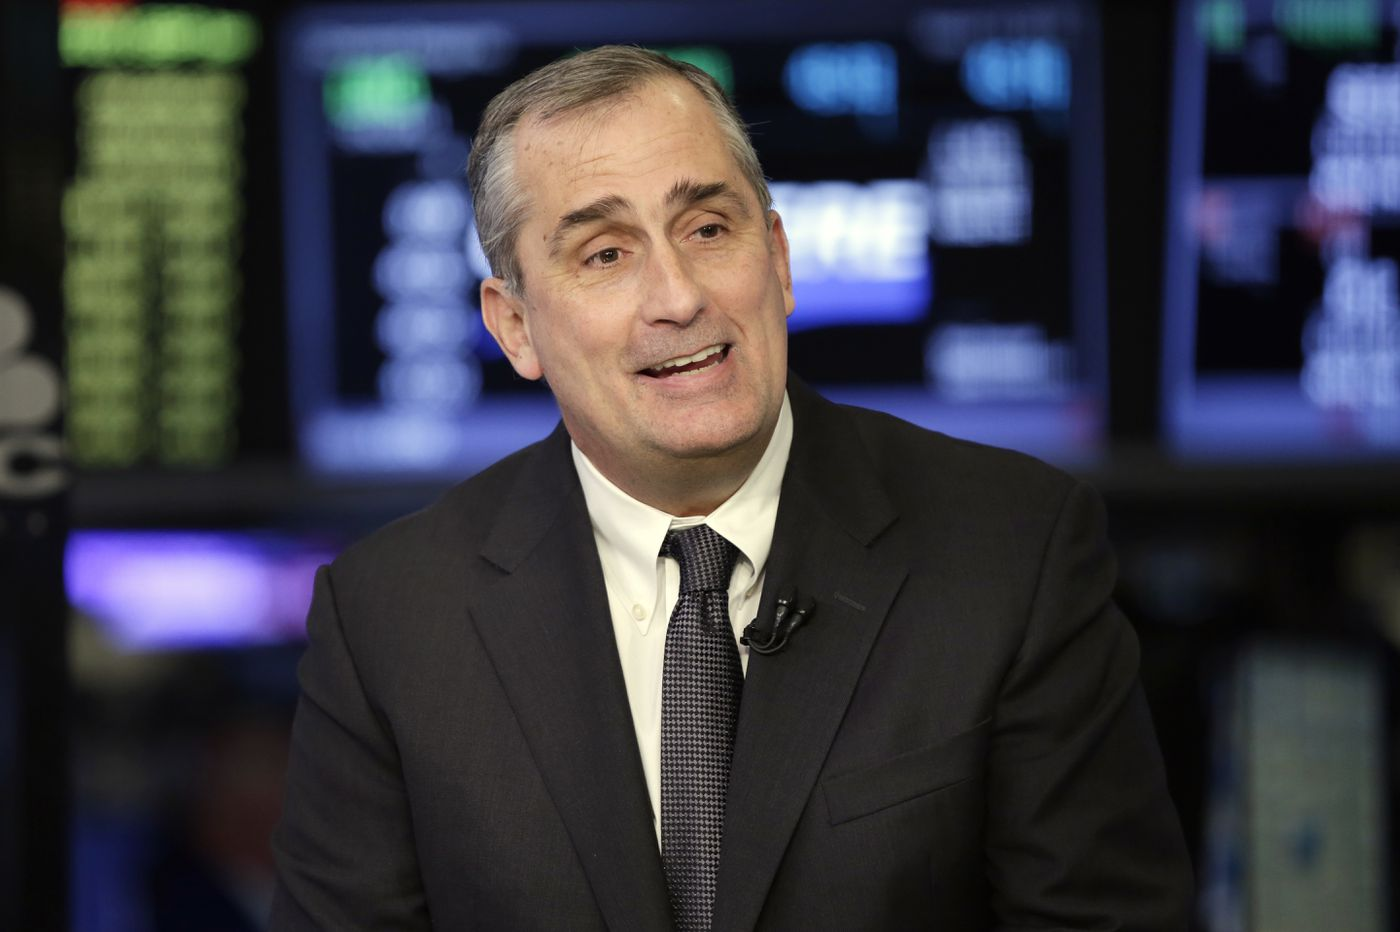 Intel CEO Krzanich resigns after relationship with employee